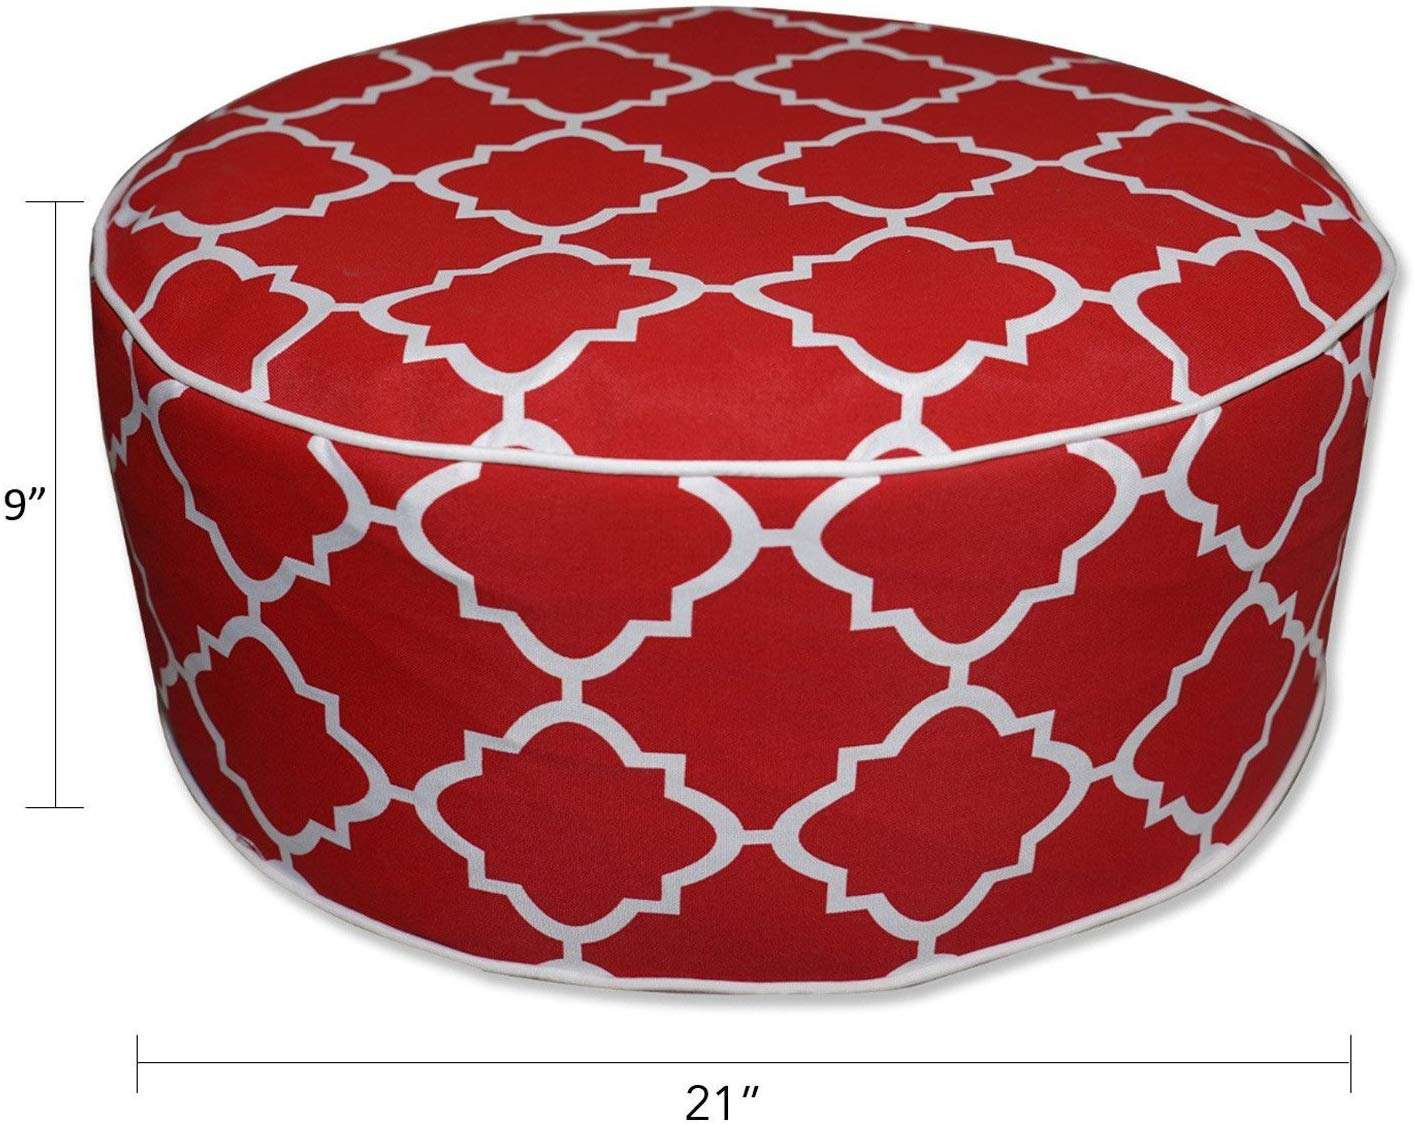 Light Blue Round Ottoman Portable Foot Rest For Patio Used For Kids Or Adults Outdoor Indoor Inflatable Footstool Ottoman